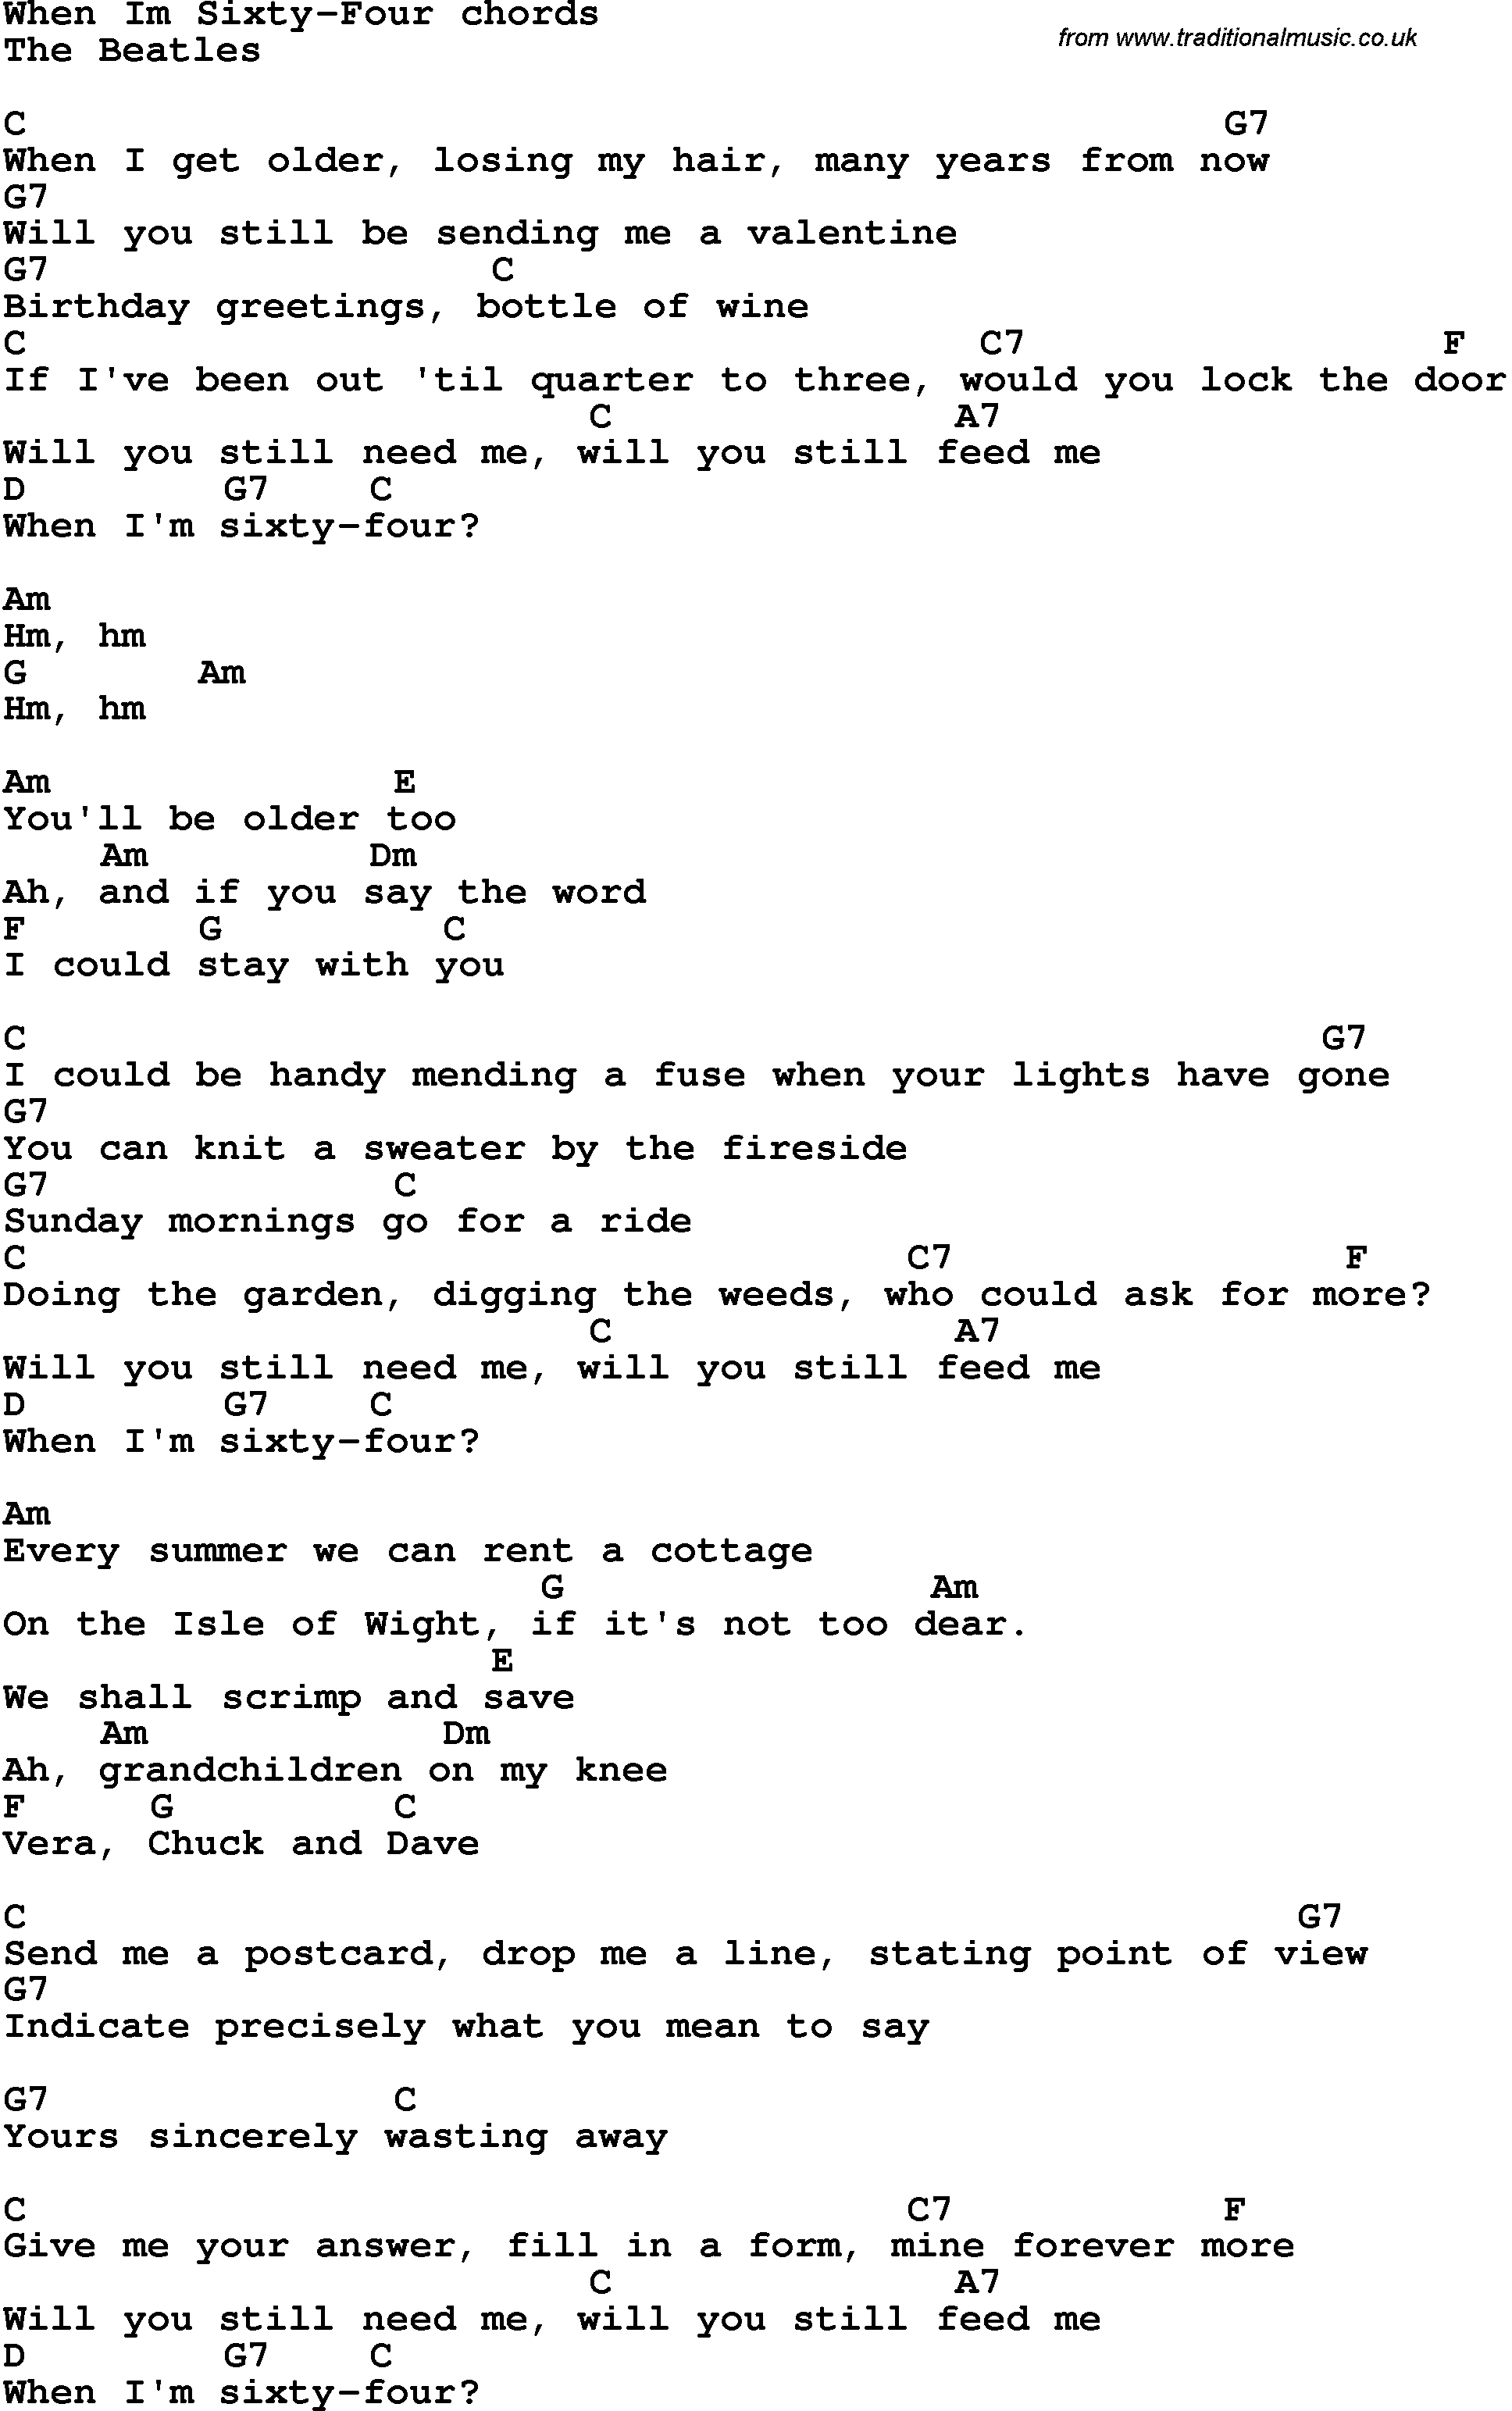 Song lyrics with guitar chords for when im 64 the beatles song lyrics with guitar chords for when im 64 the beatles hexwebz Images